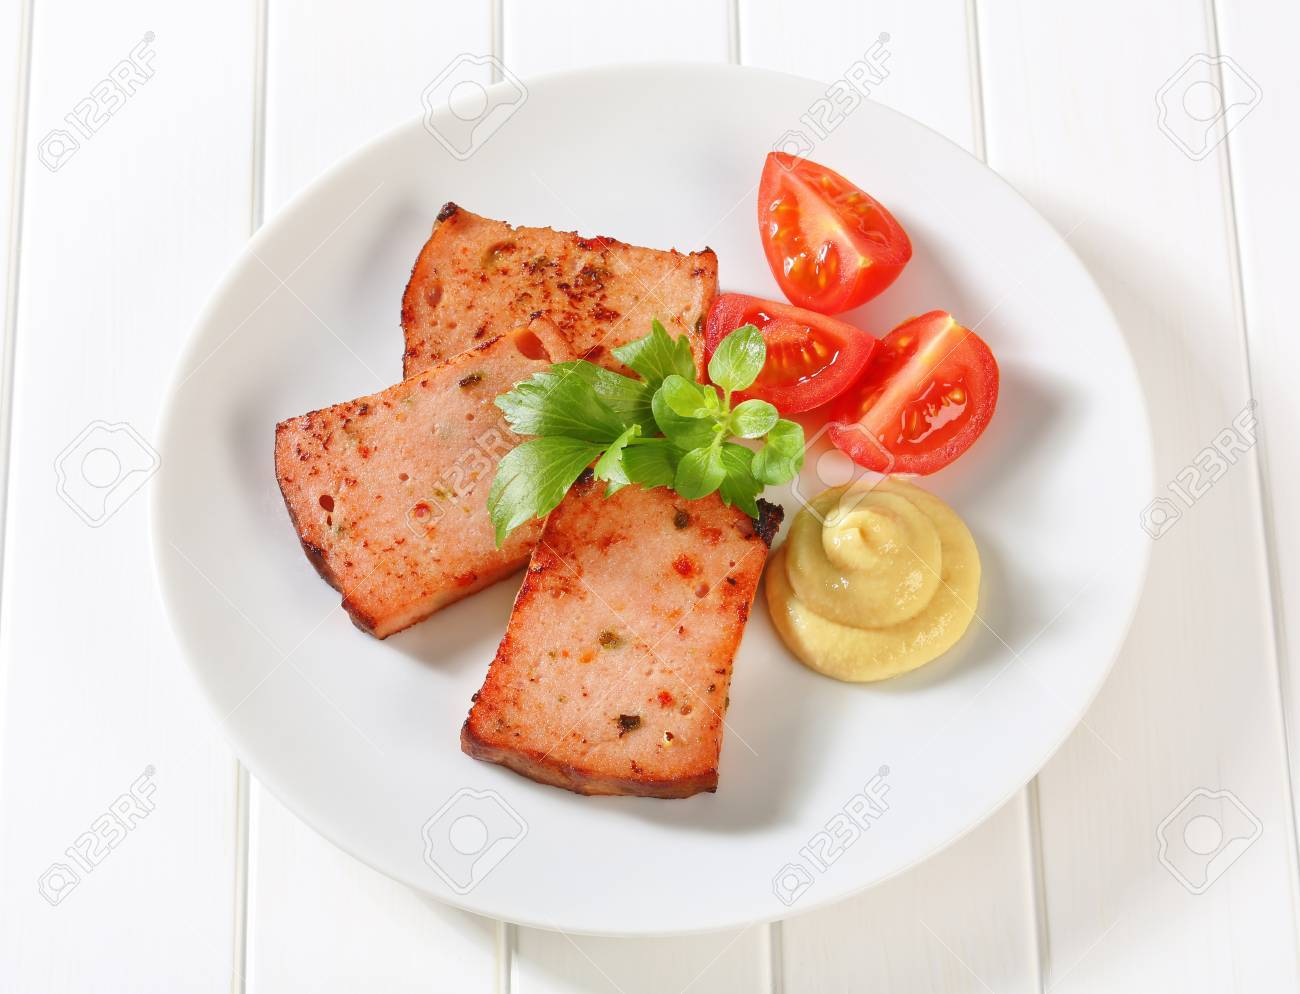 Pan-fried slices of meatloaf with mustard Stock Photo - 20535935